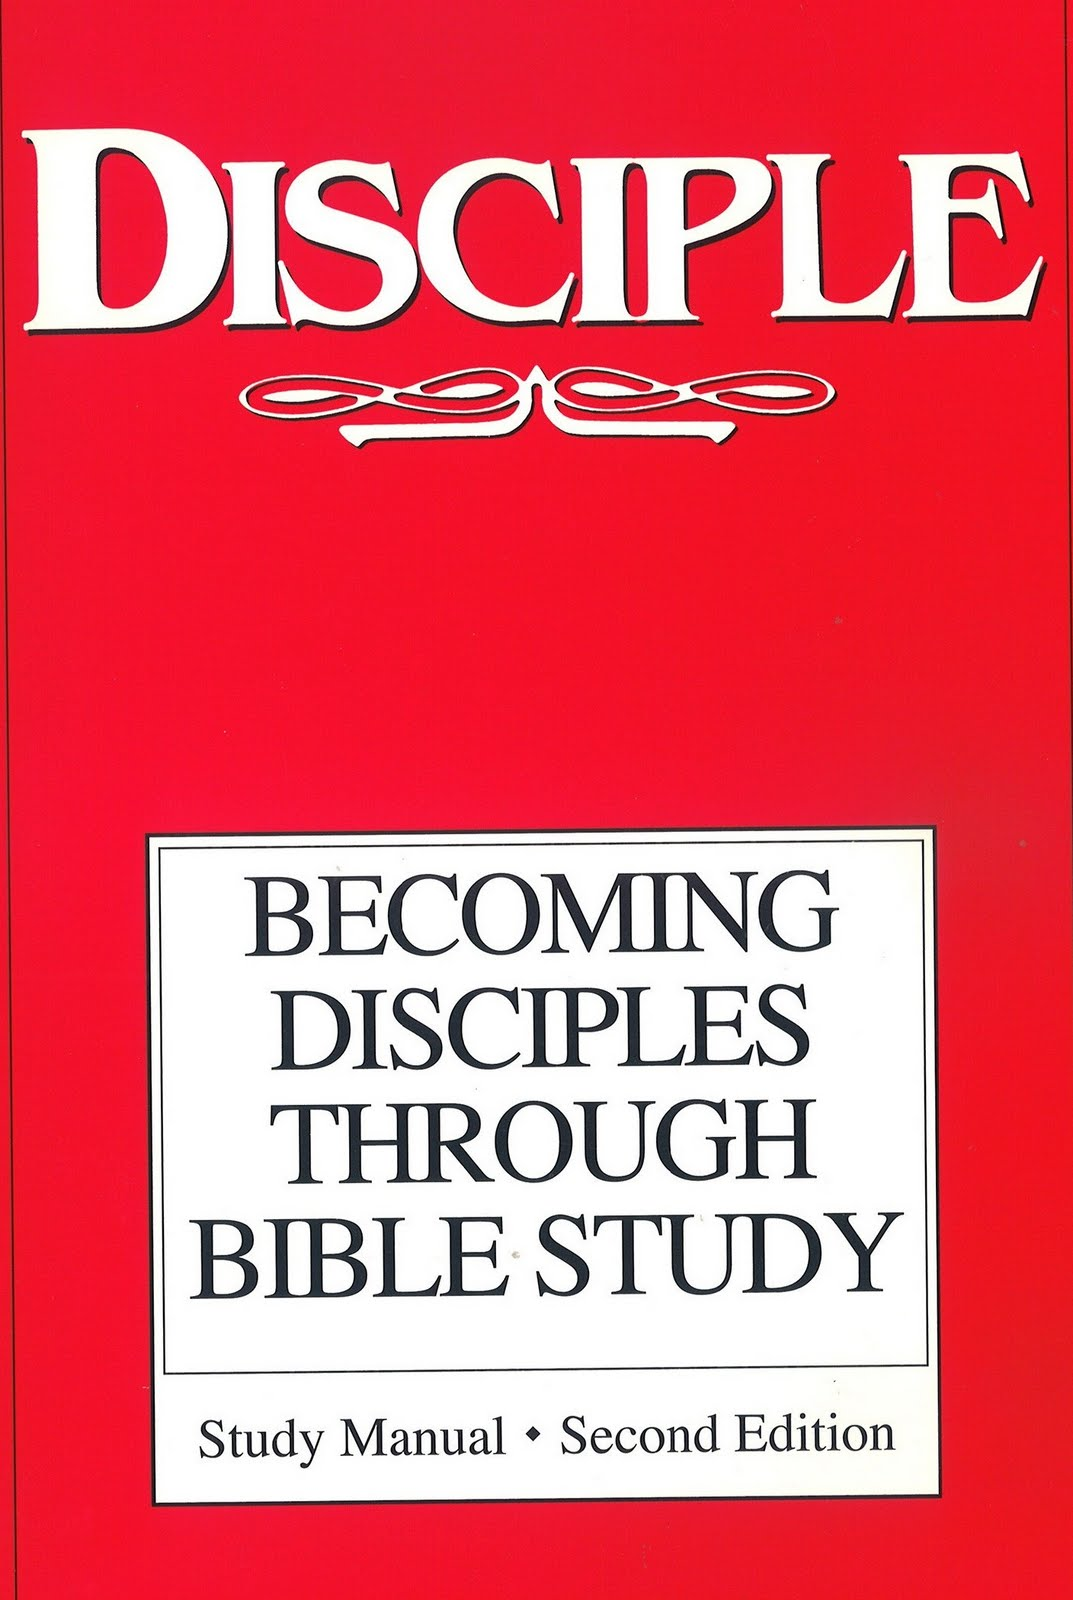 Disciple 1/1 (Becoming Disciples Through Bible Study ...